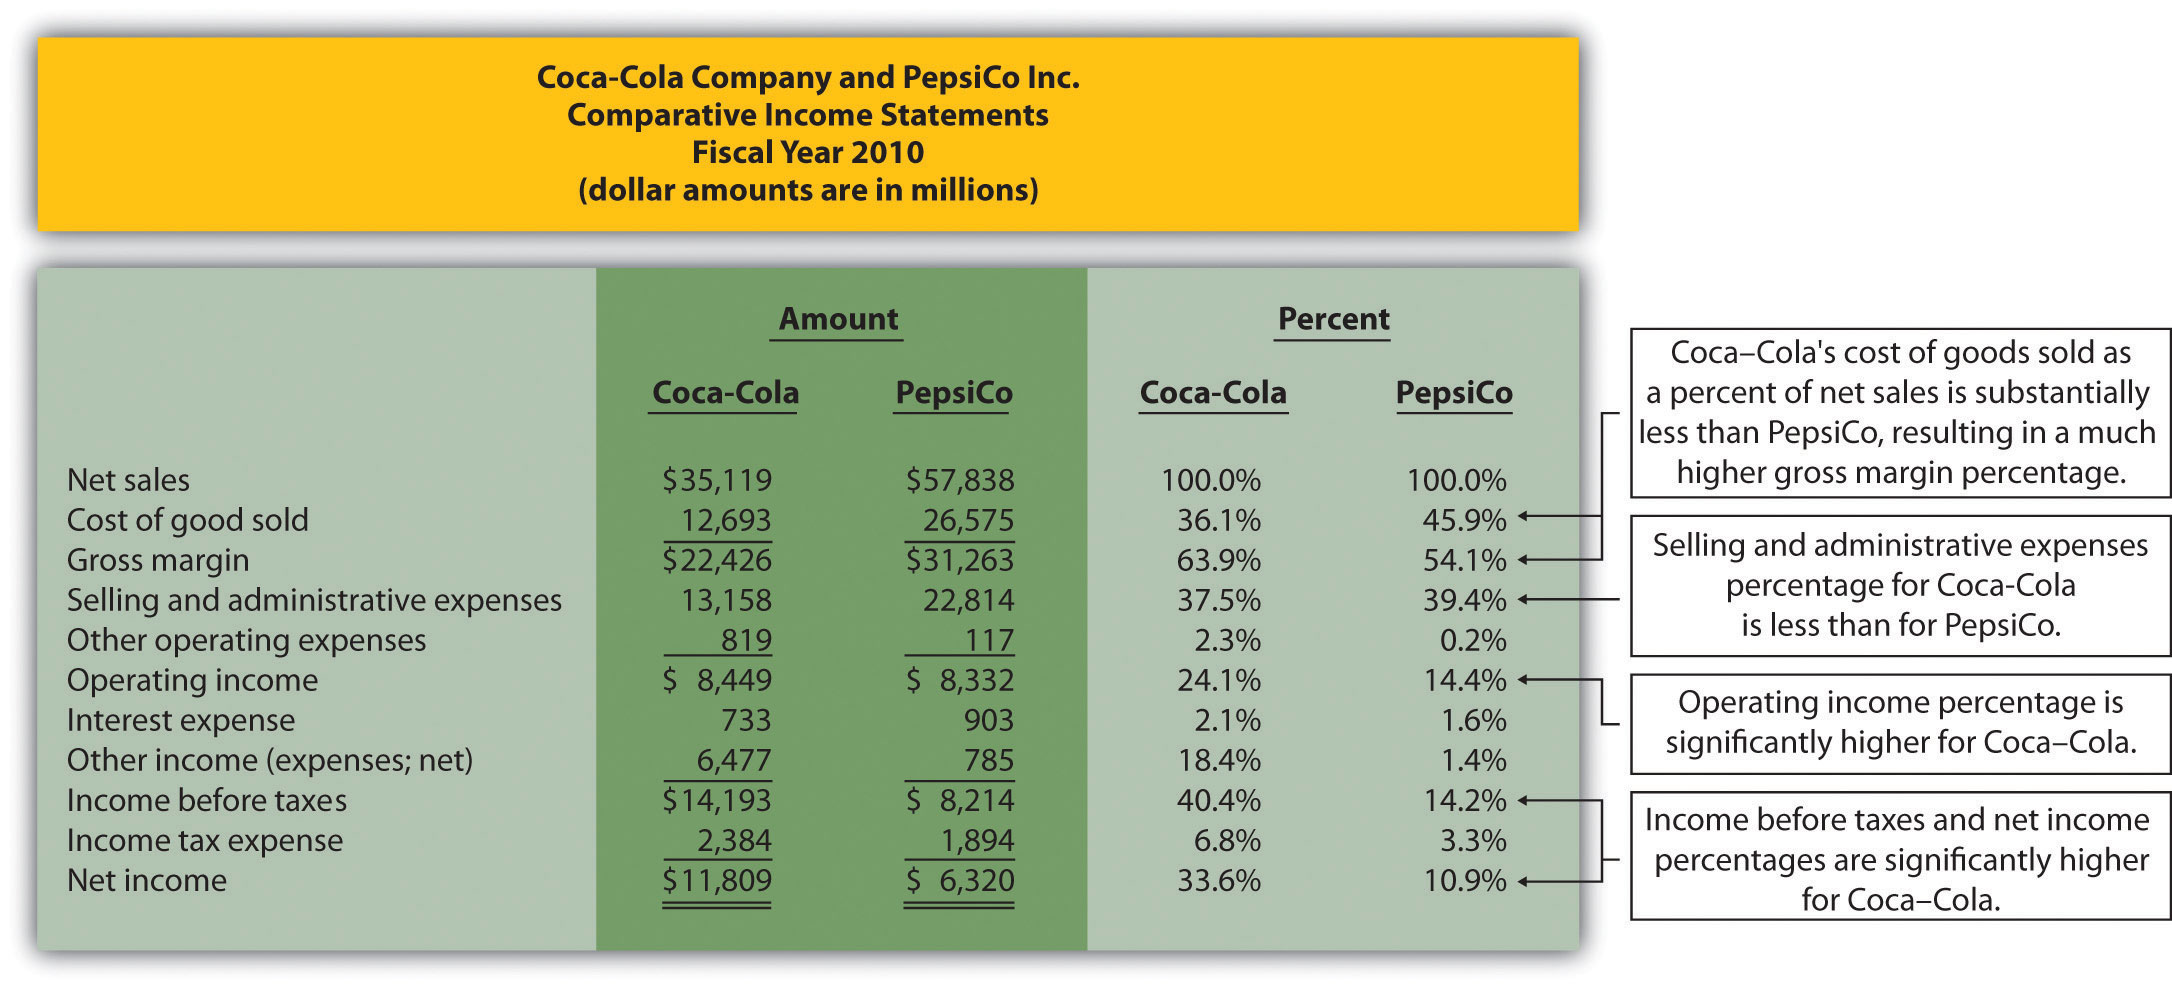 balance sheet analysis of the coca cola company finance essay This paper mainly considers the implications to the coca-cola company from  the financial crisis by analysing the balance sheet and the annual rep  to  know how to further develop the market, the economic situation analysis is  essential.